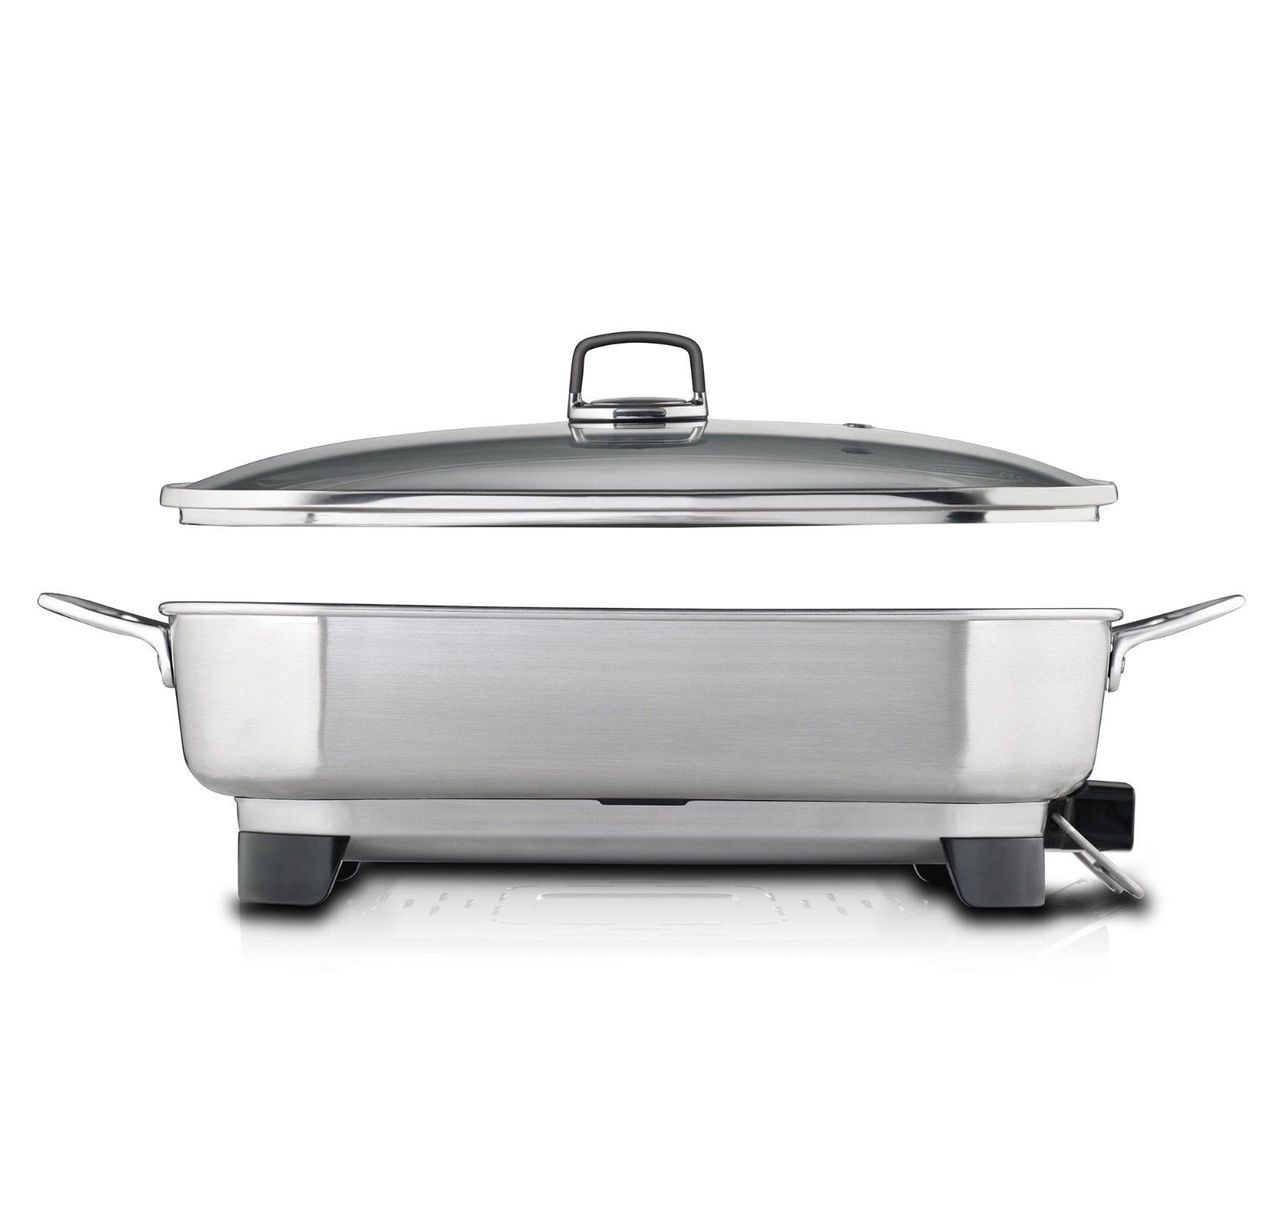 Sunbeam FP8950 Ellise Stainless Steel Banquet with Insulating Base - RRP $149.00